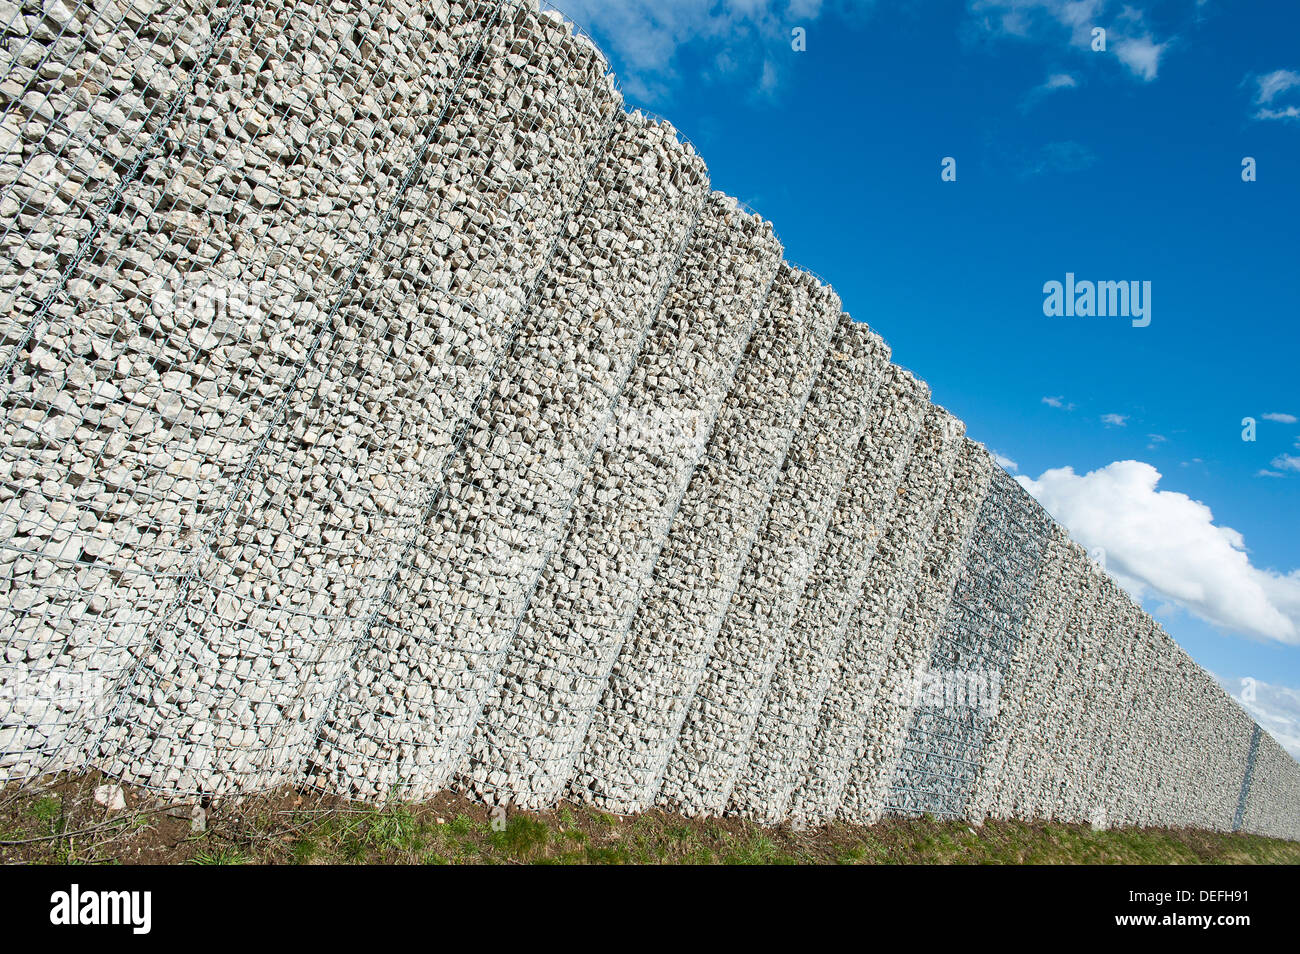 Gabion wall, mesh baskets filled with stones, noise protection wall on the Autobahn A9 motorway, Bavaria, Germany Stock Photo